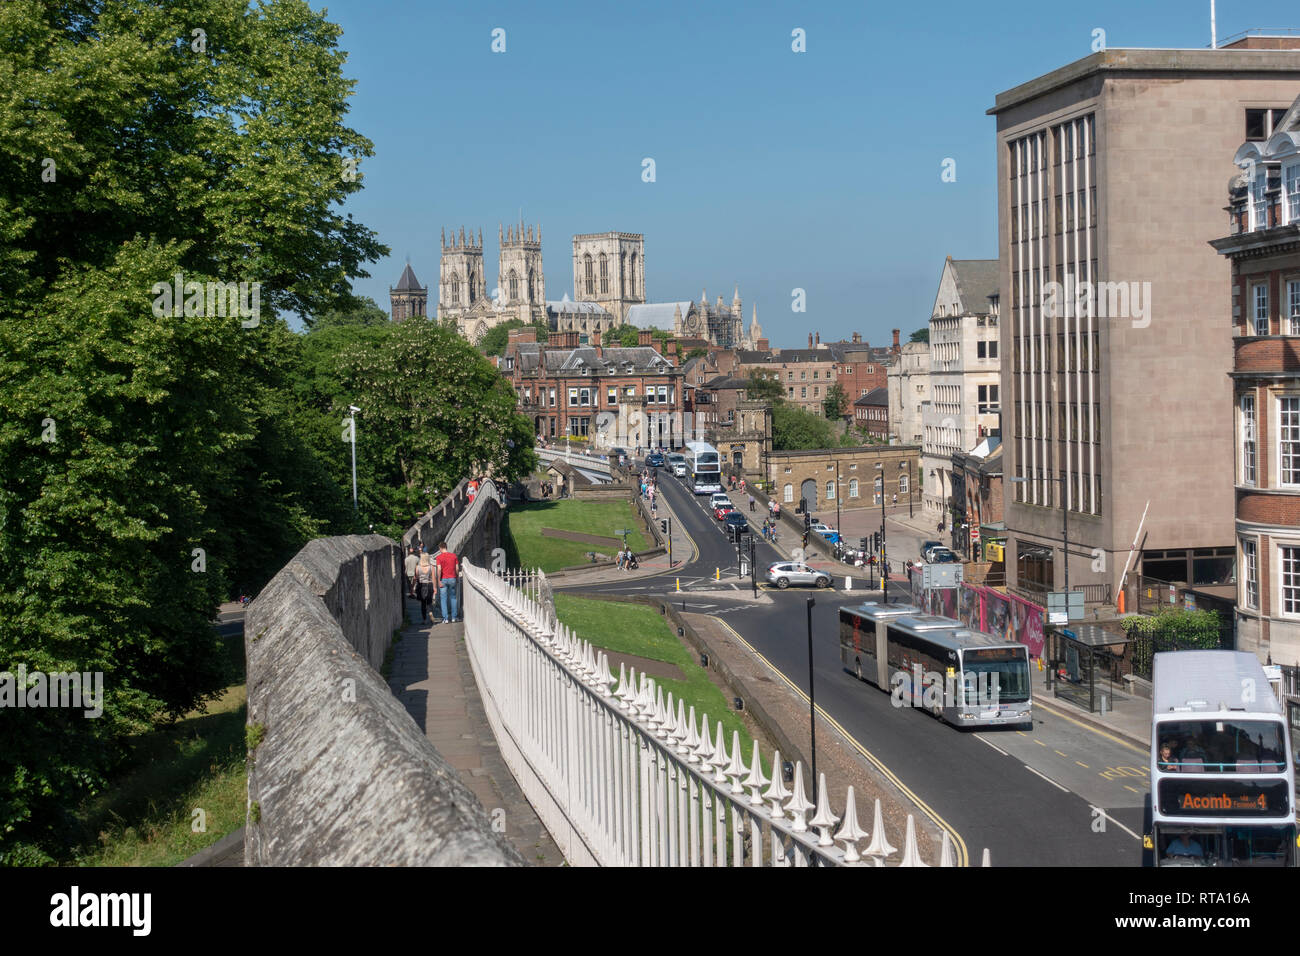 York Minster viewed from the city walls, City of York, UK. - Stock Image